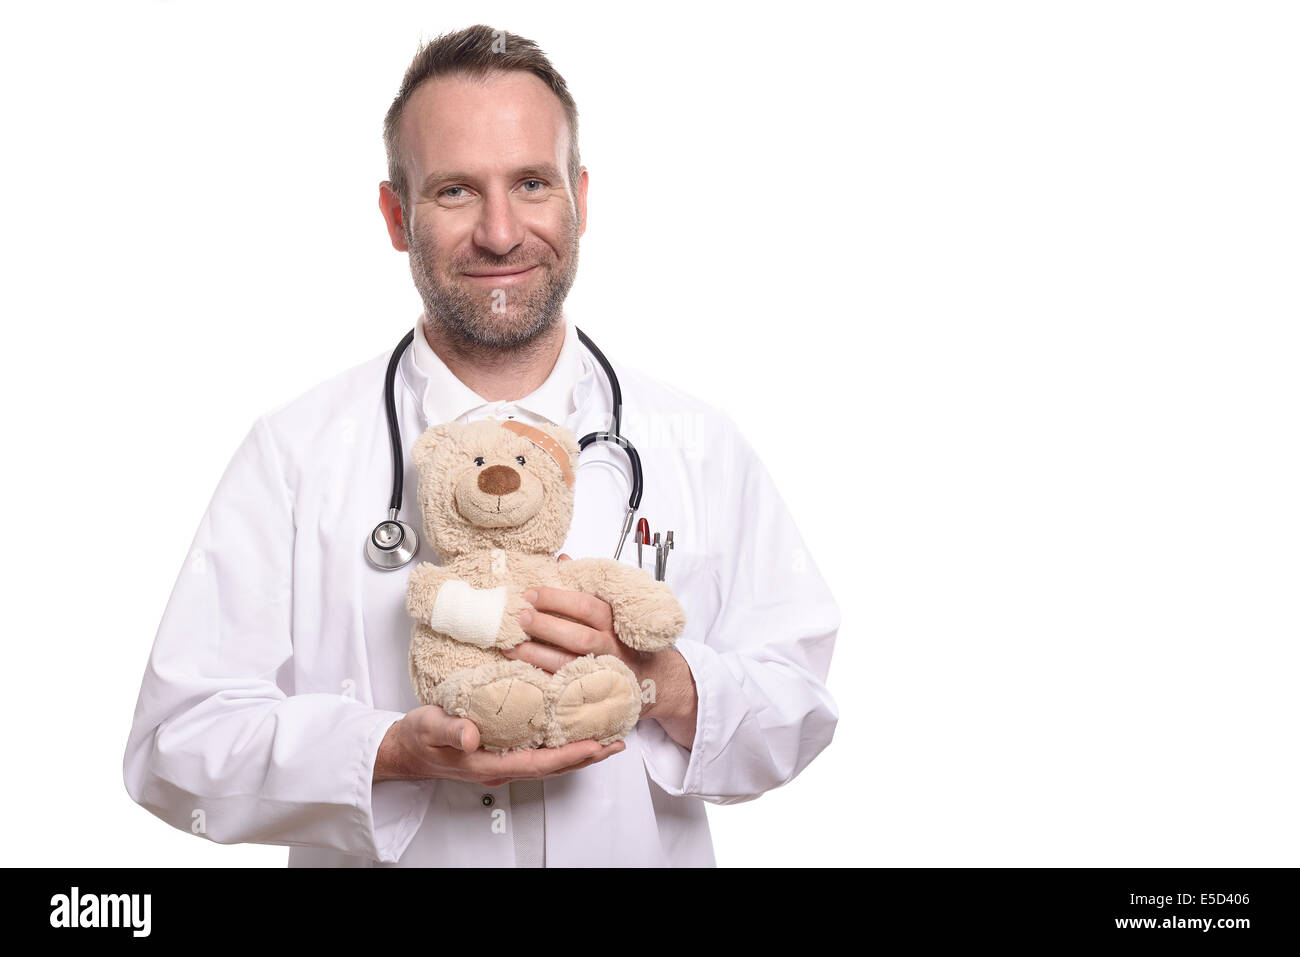 Friendly smiling middle-aged male pediatrician with unshaven stubble holding a teddy bear with a bandaged arm to - Stock Image